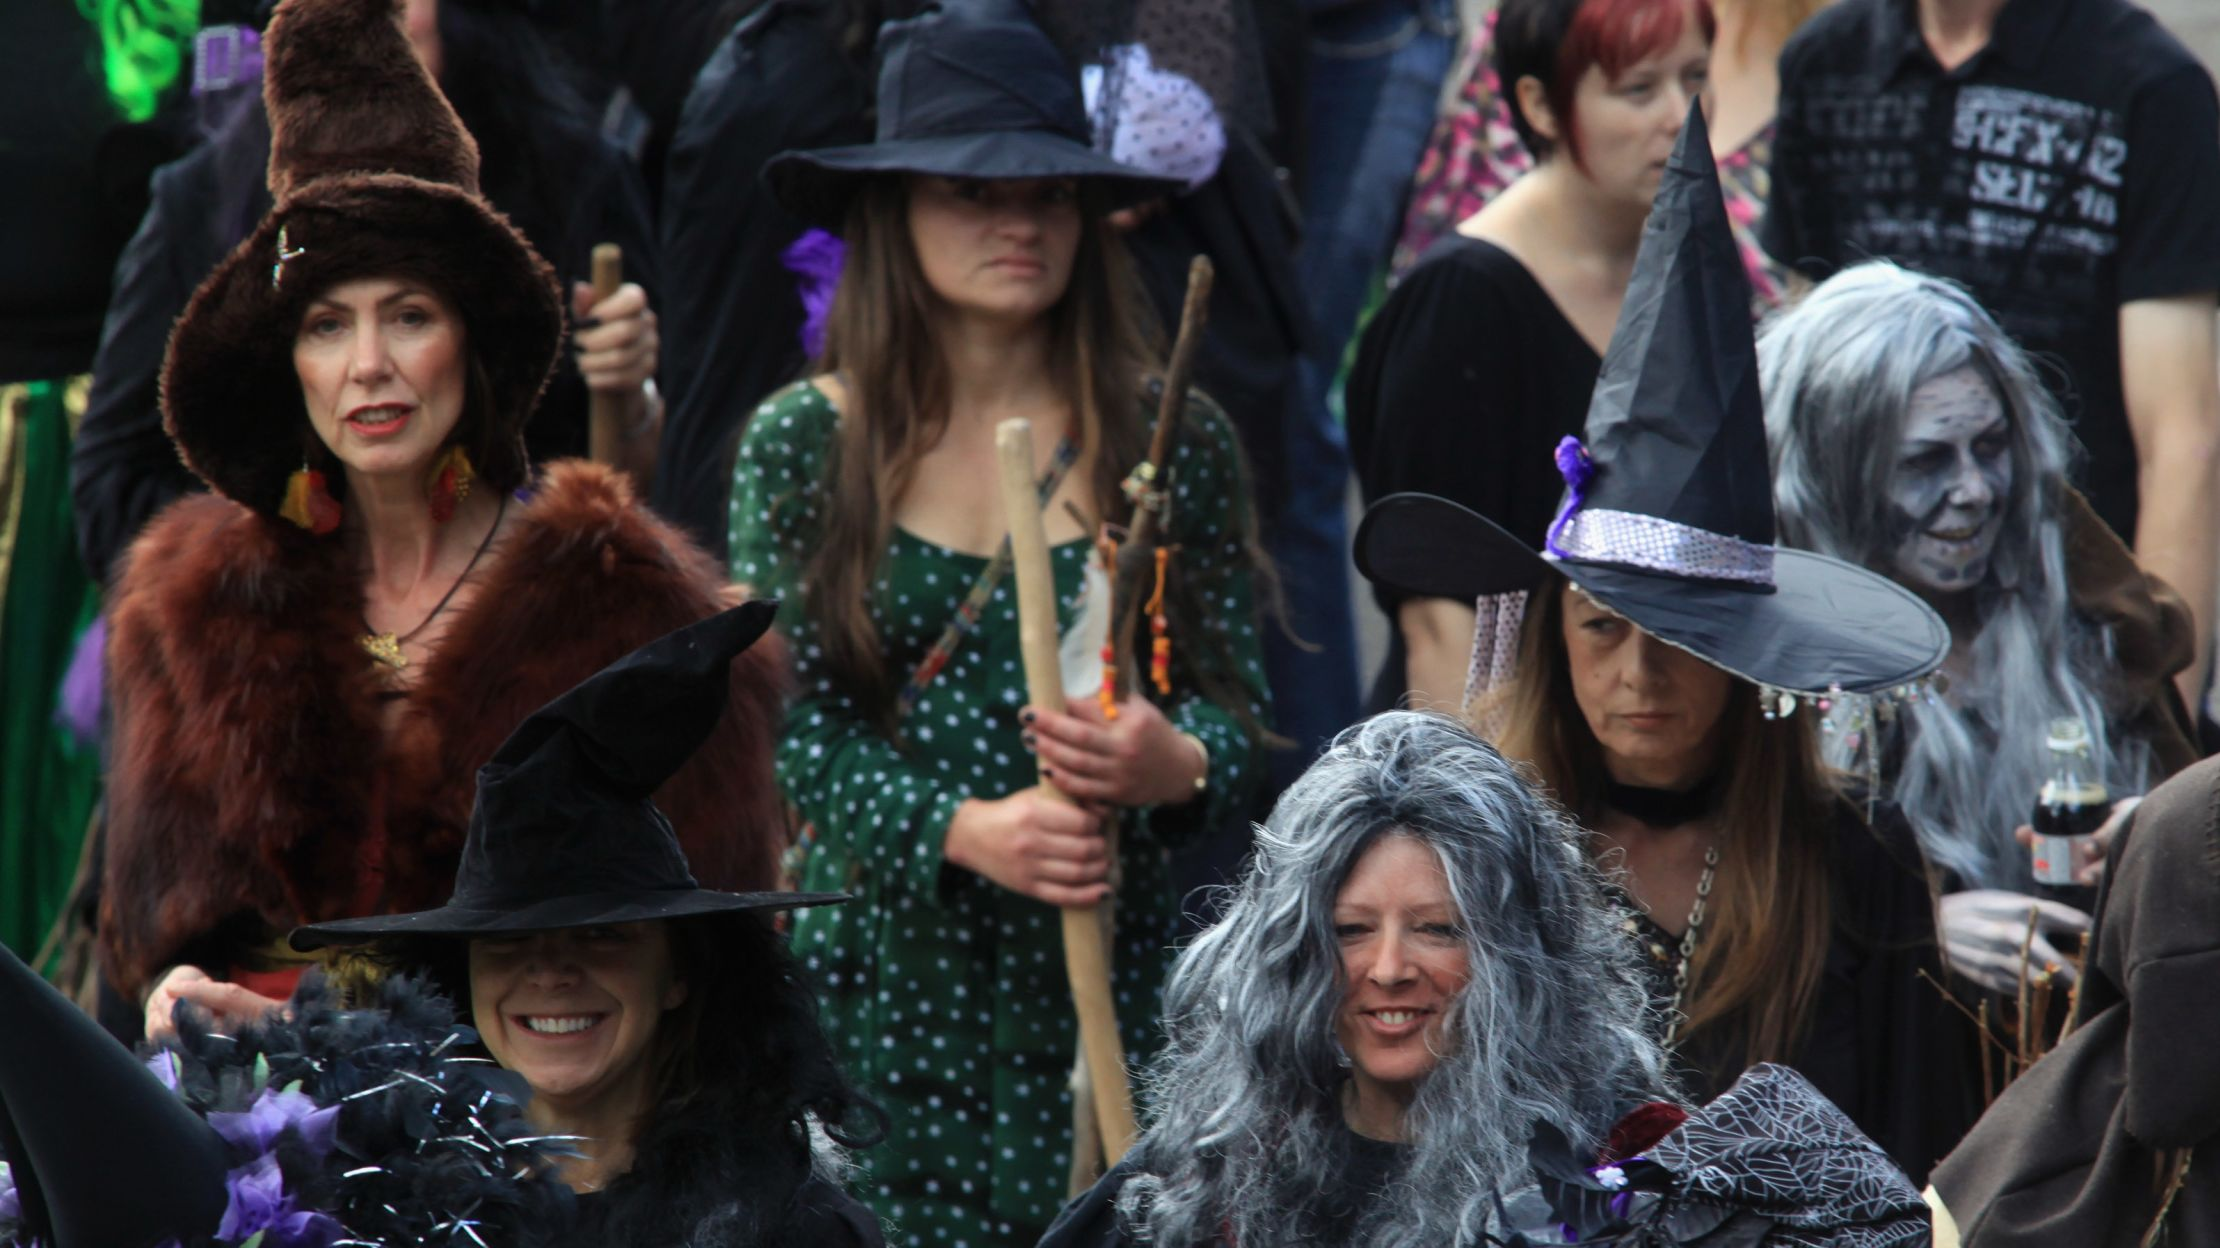 17 Signs That You'd Qualify as a Witch in 1692